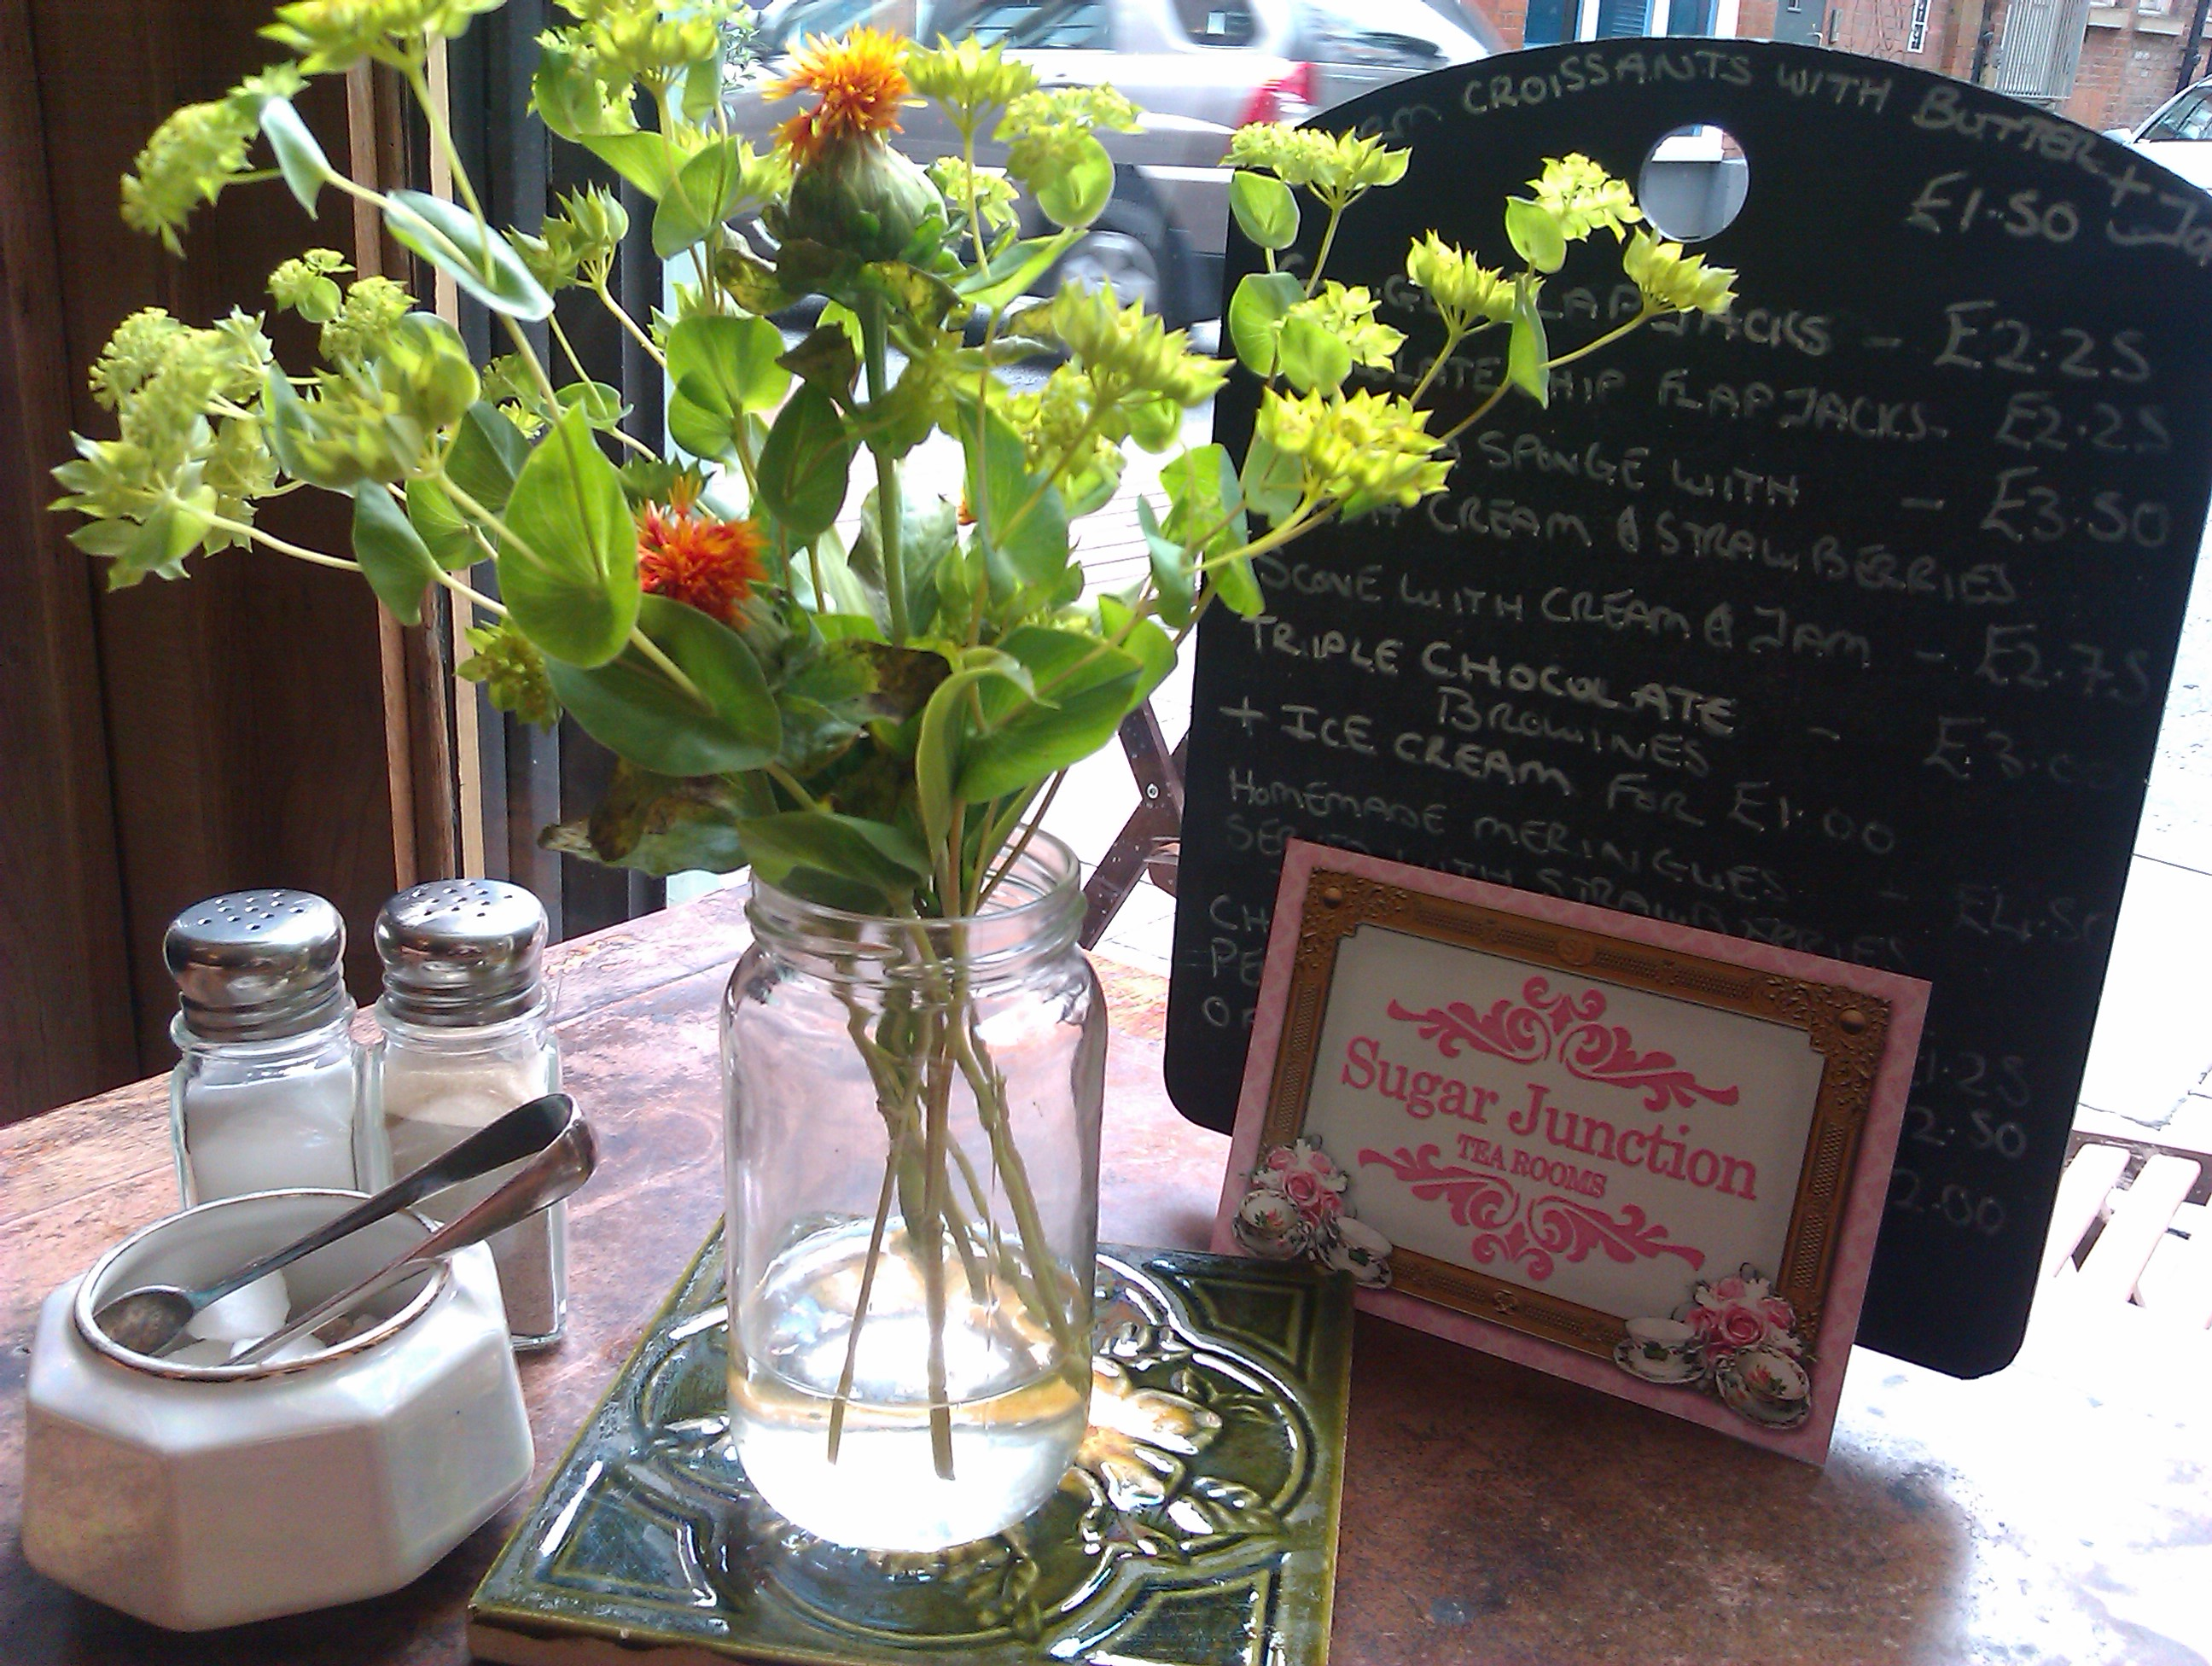 Victoria Rose Tea Rooms Menu